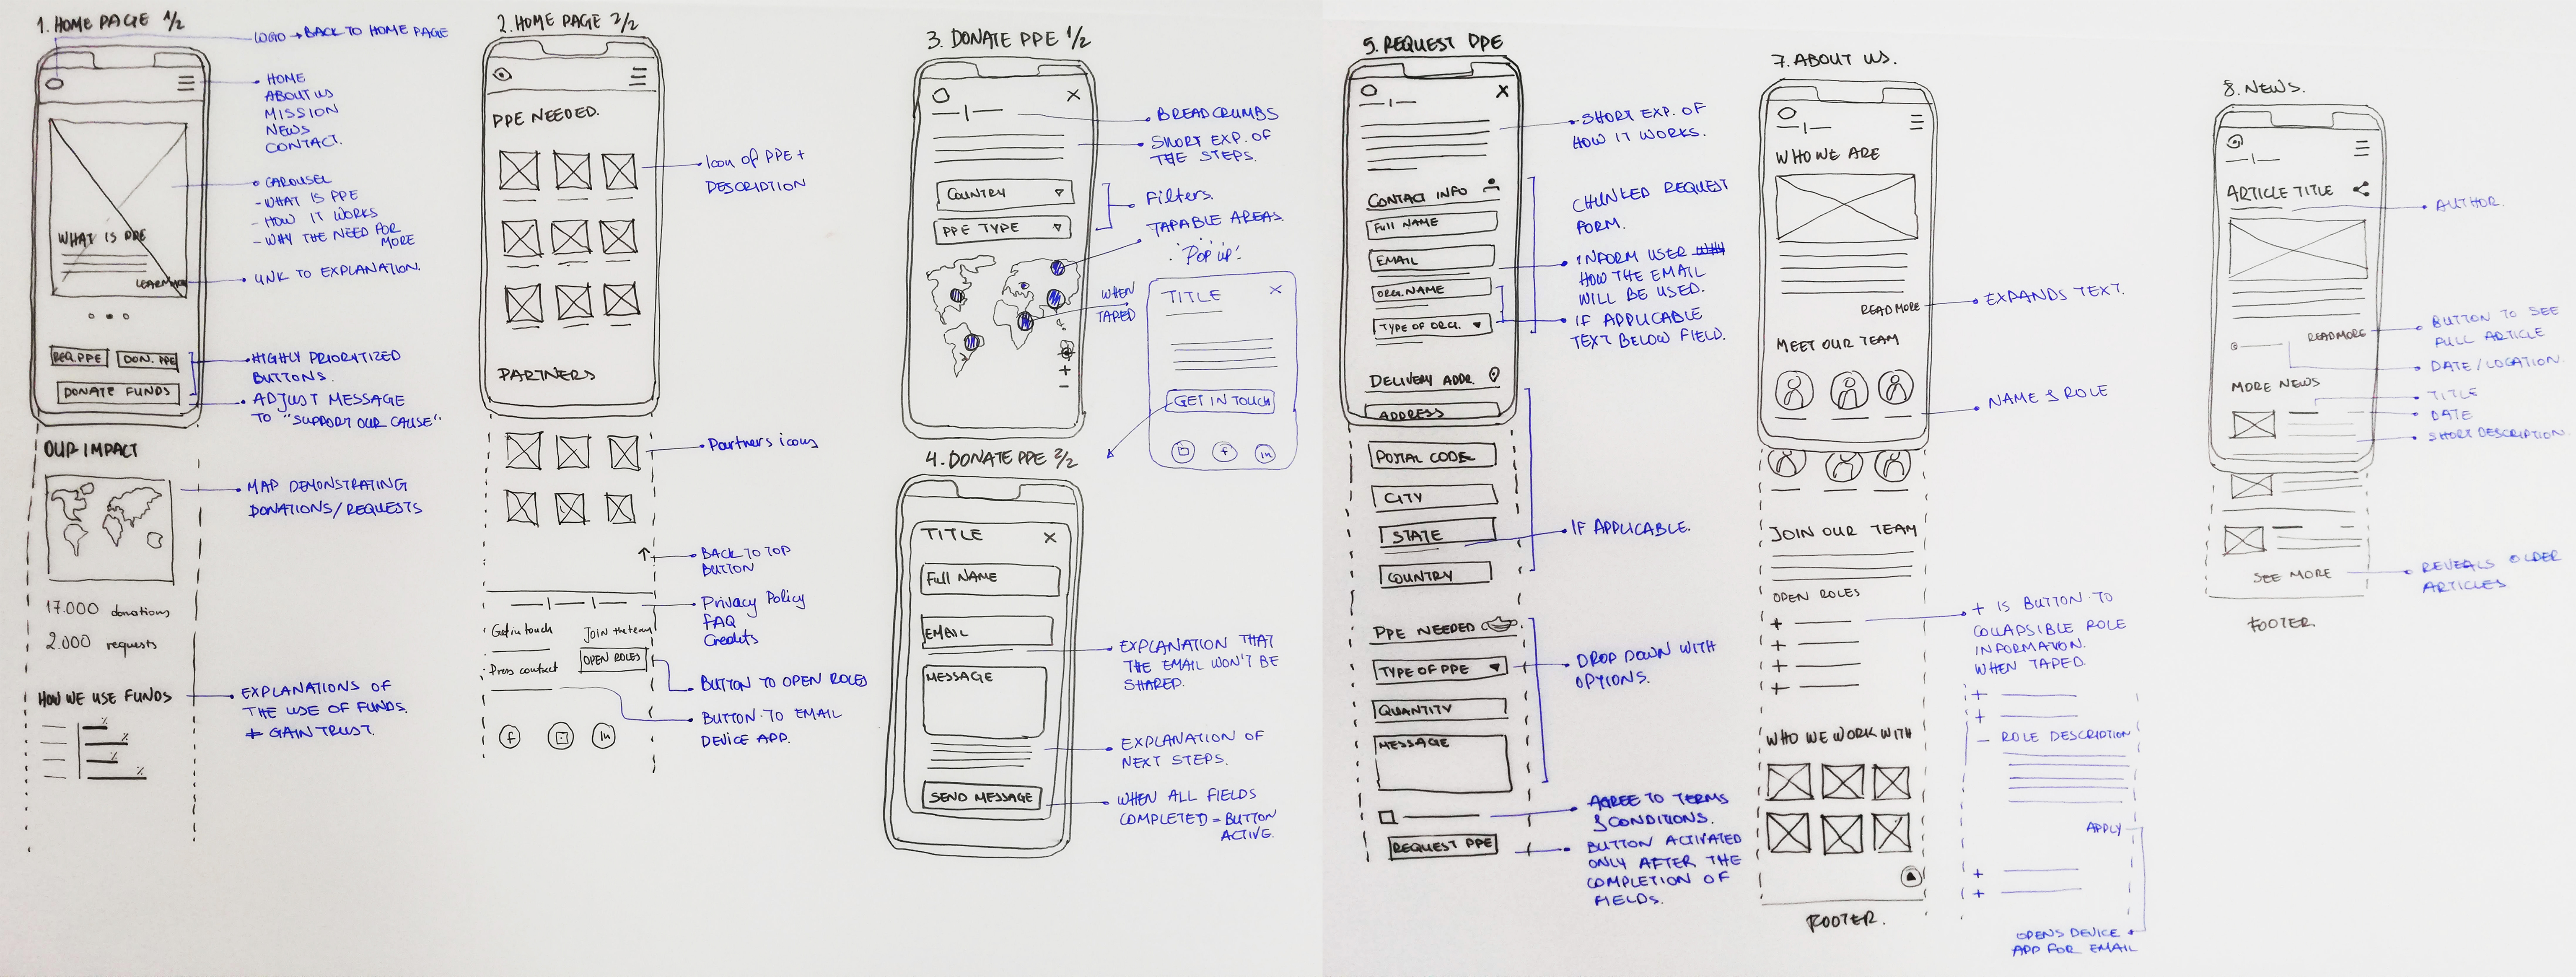 Sketchy wireframes.